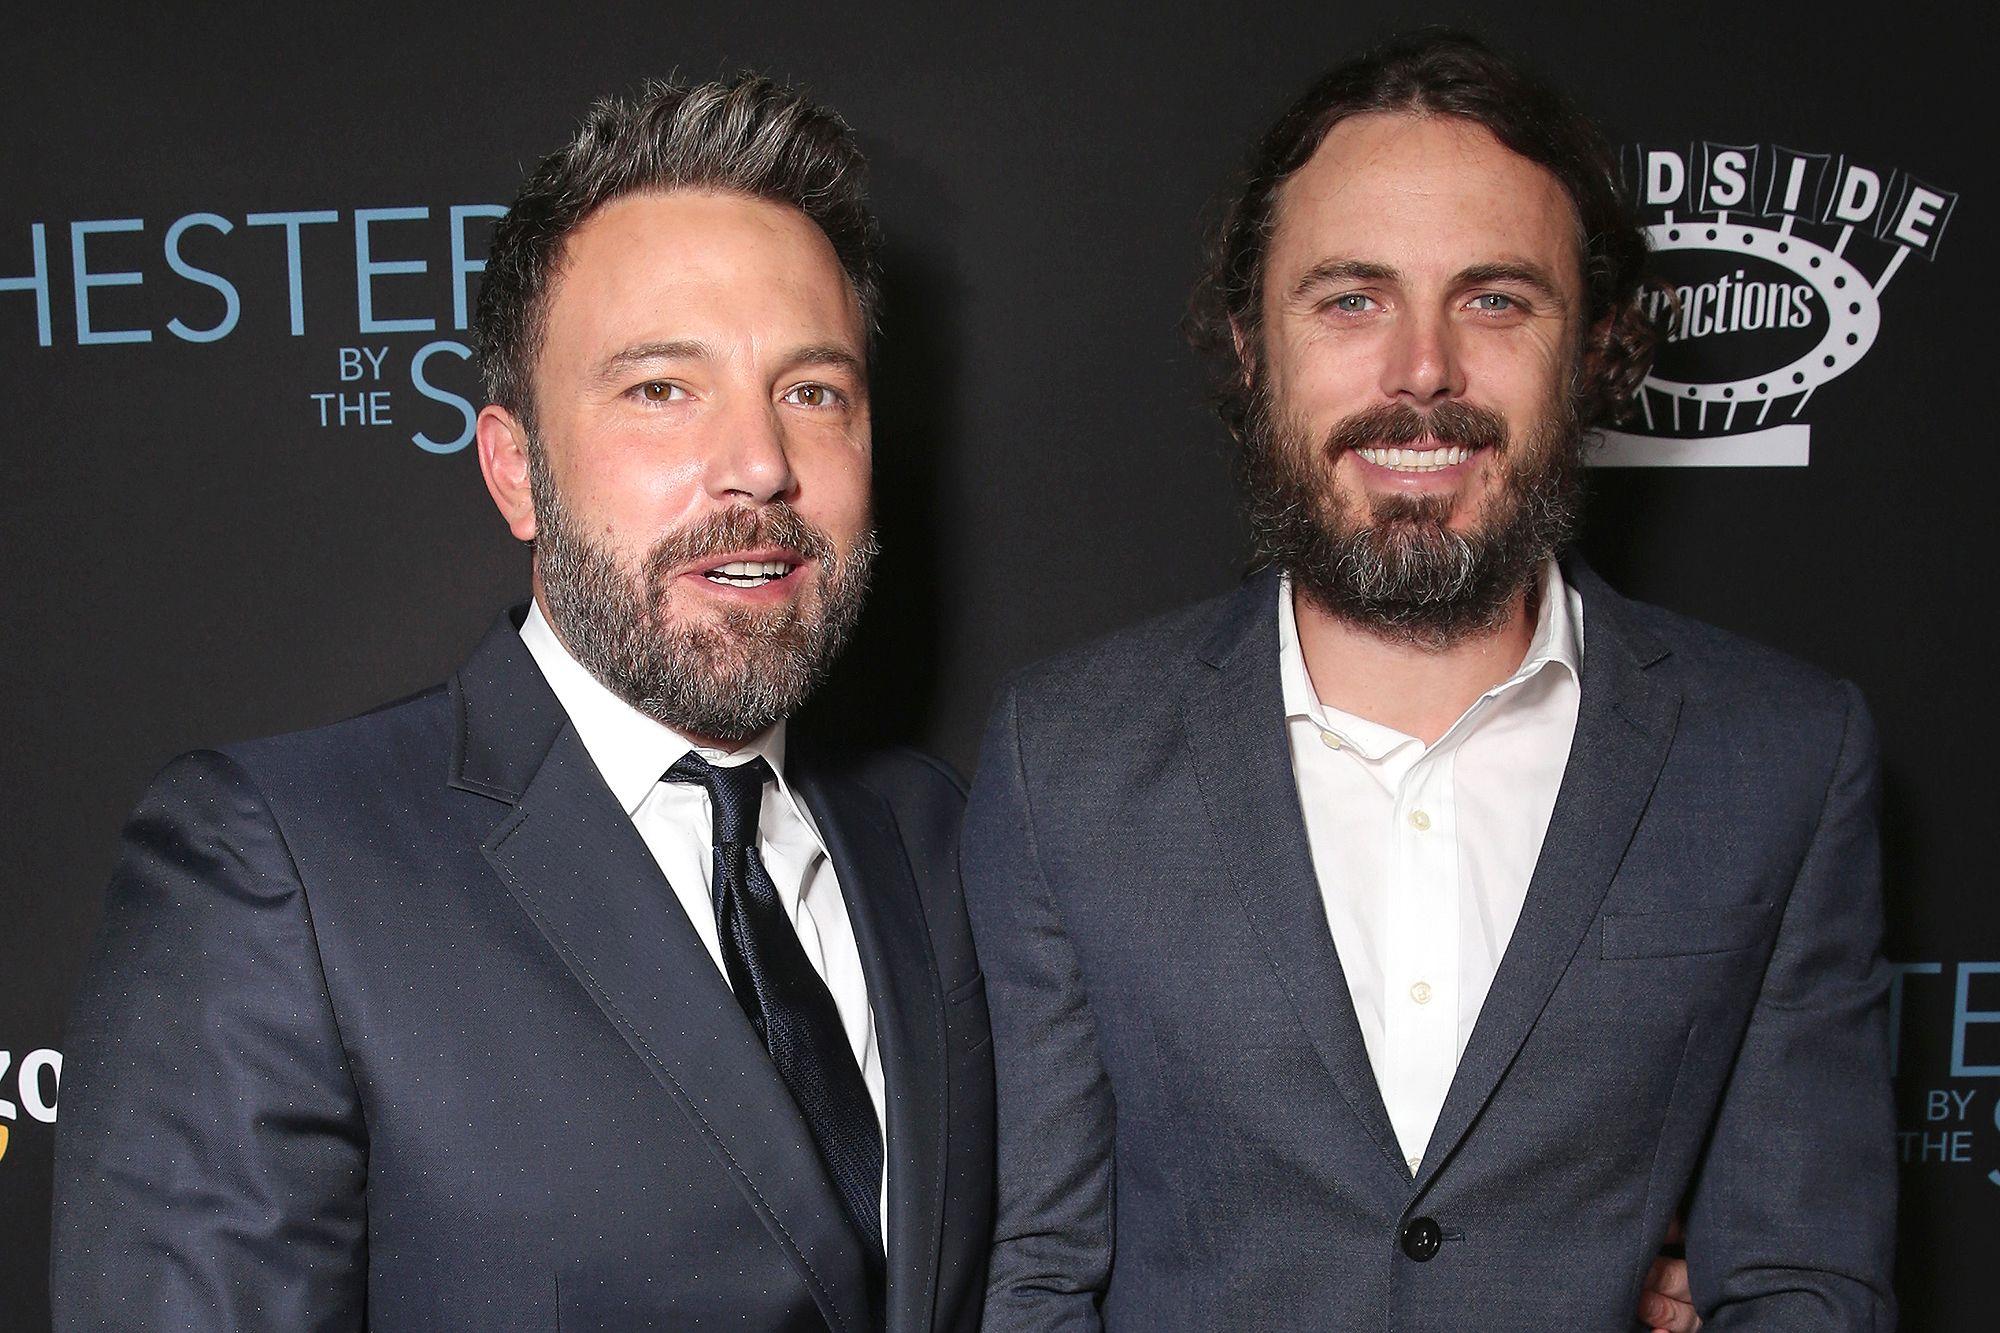 Ben Affleck Is Trying To Be Sober For His Kids Sake And For Their Mom Says Brother Casey Casey Affleck Manchester By The Sea Ben Affleck